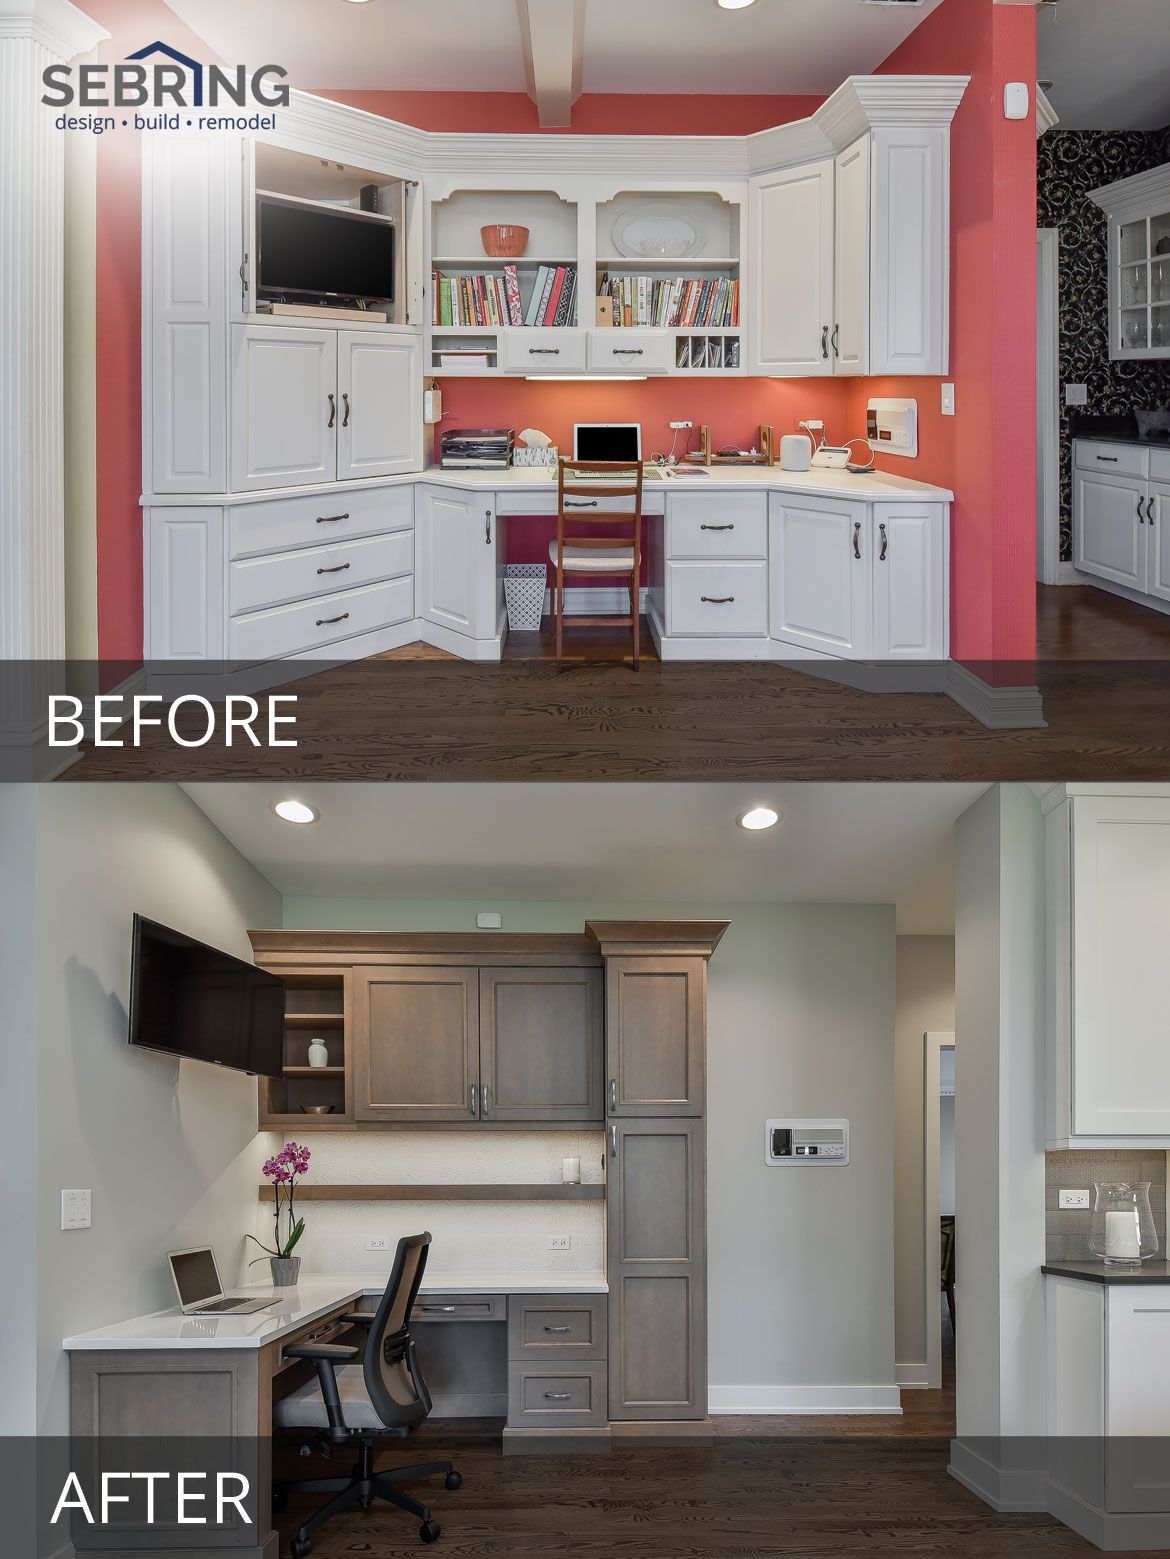 Gregg Merriann S Kitchen Before After Pictures Cheap Kitchen Remodel Farmhouse Kitchen Remodel Kitchen Remodel Cost